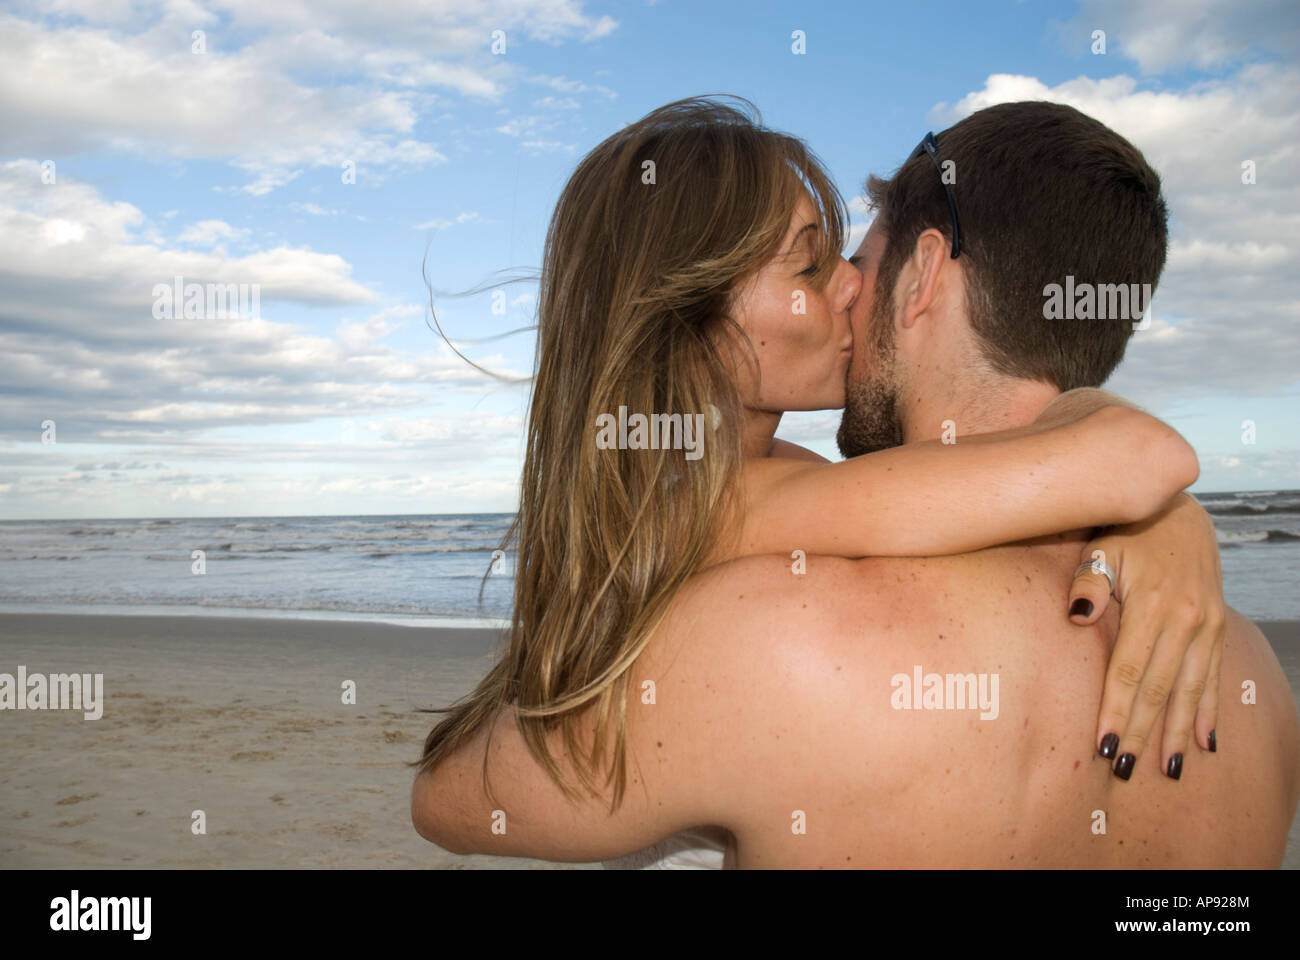 a boy naked and a girl naked kissing